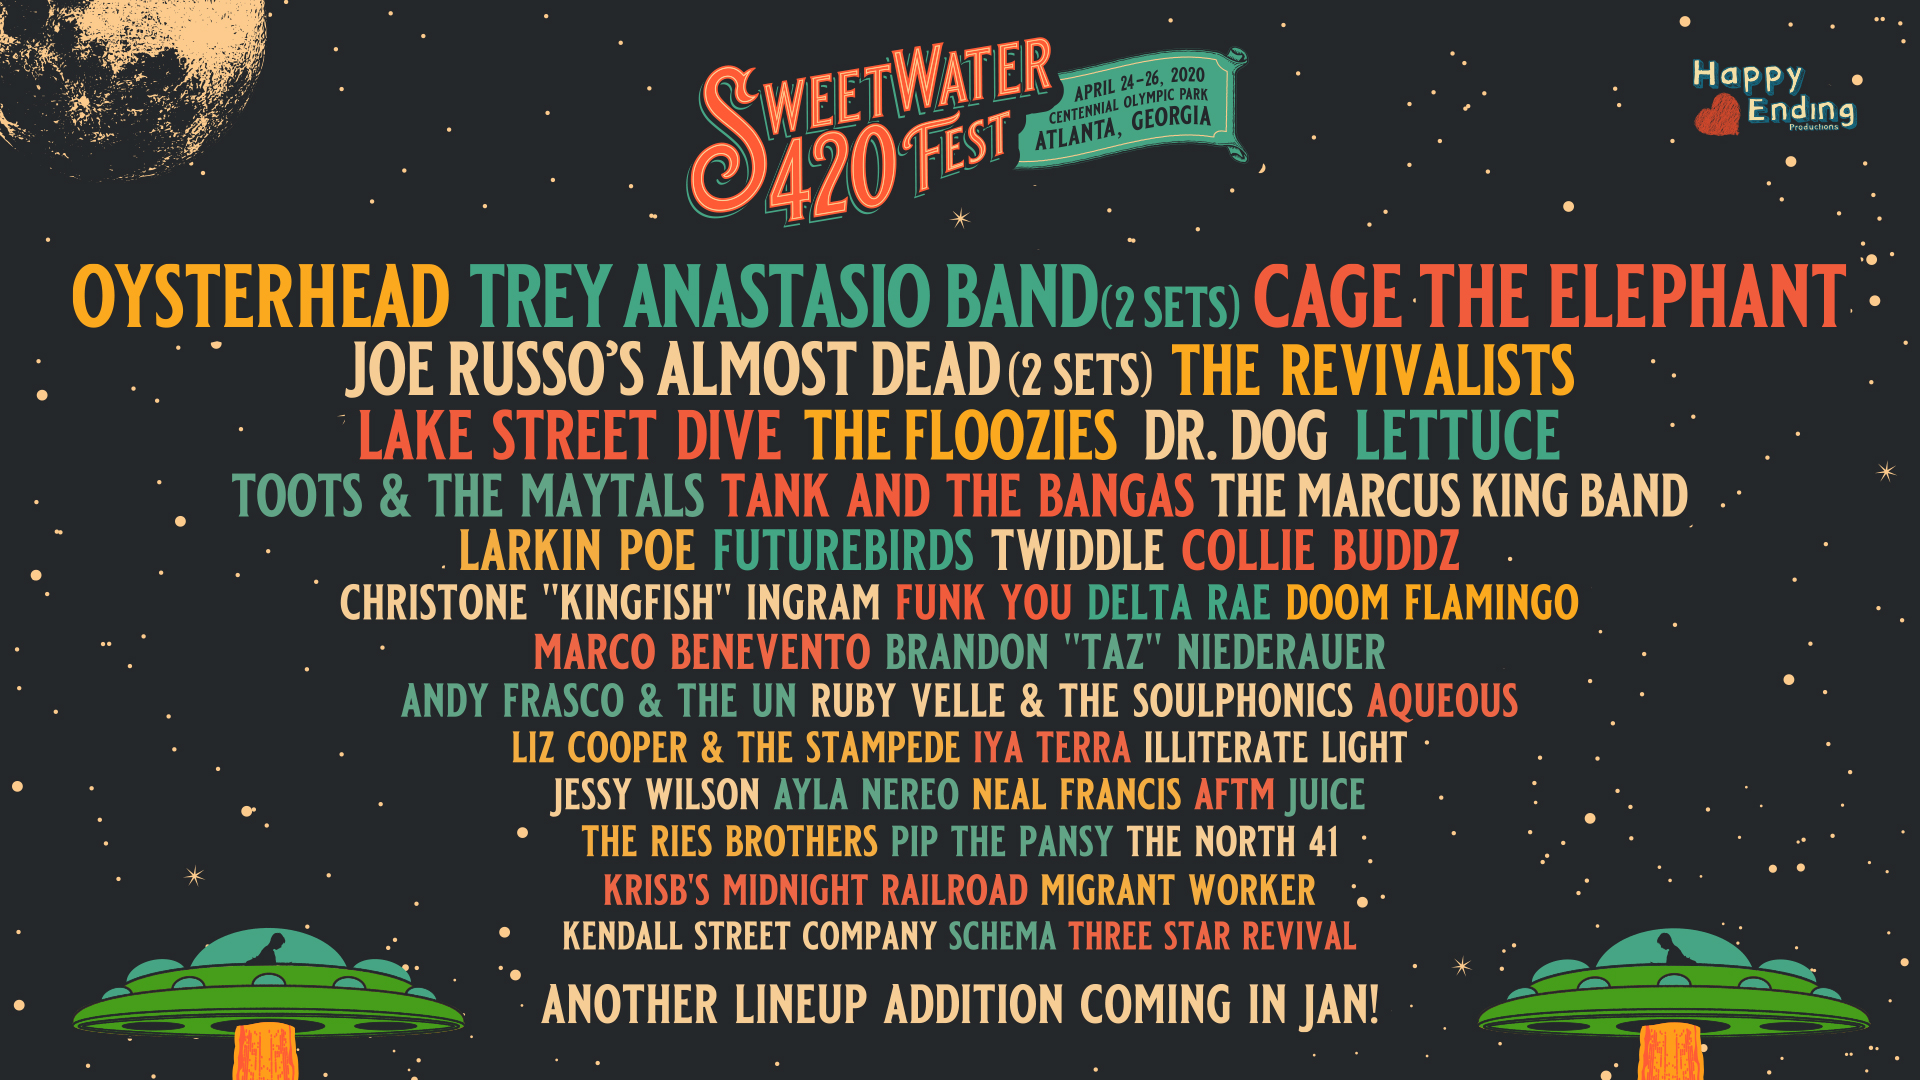 Sweetwater 420 Fest Adds Cage the Elephant to Join Oysterhead & Trey Anastasio Band